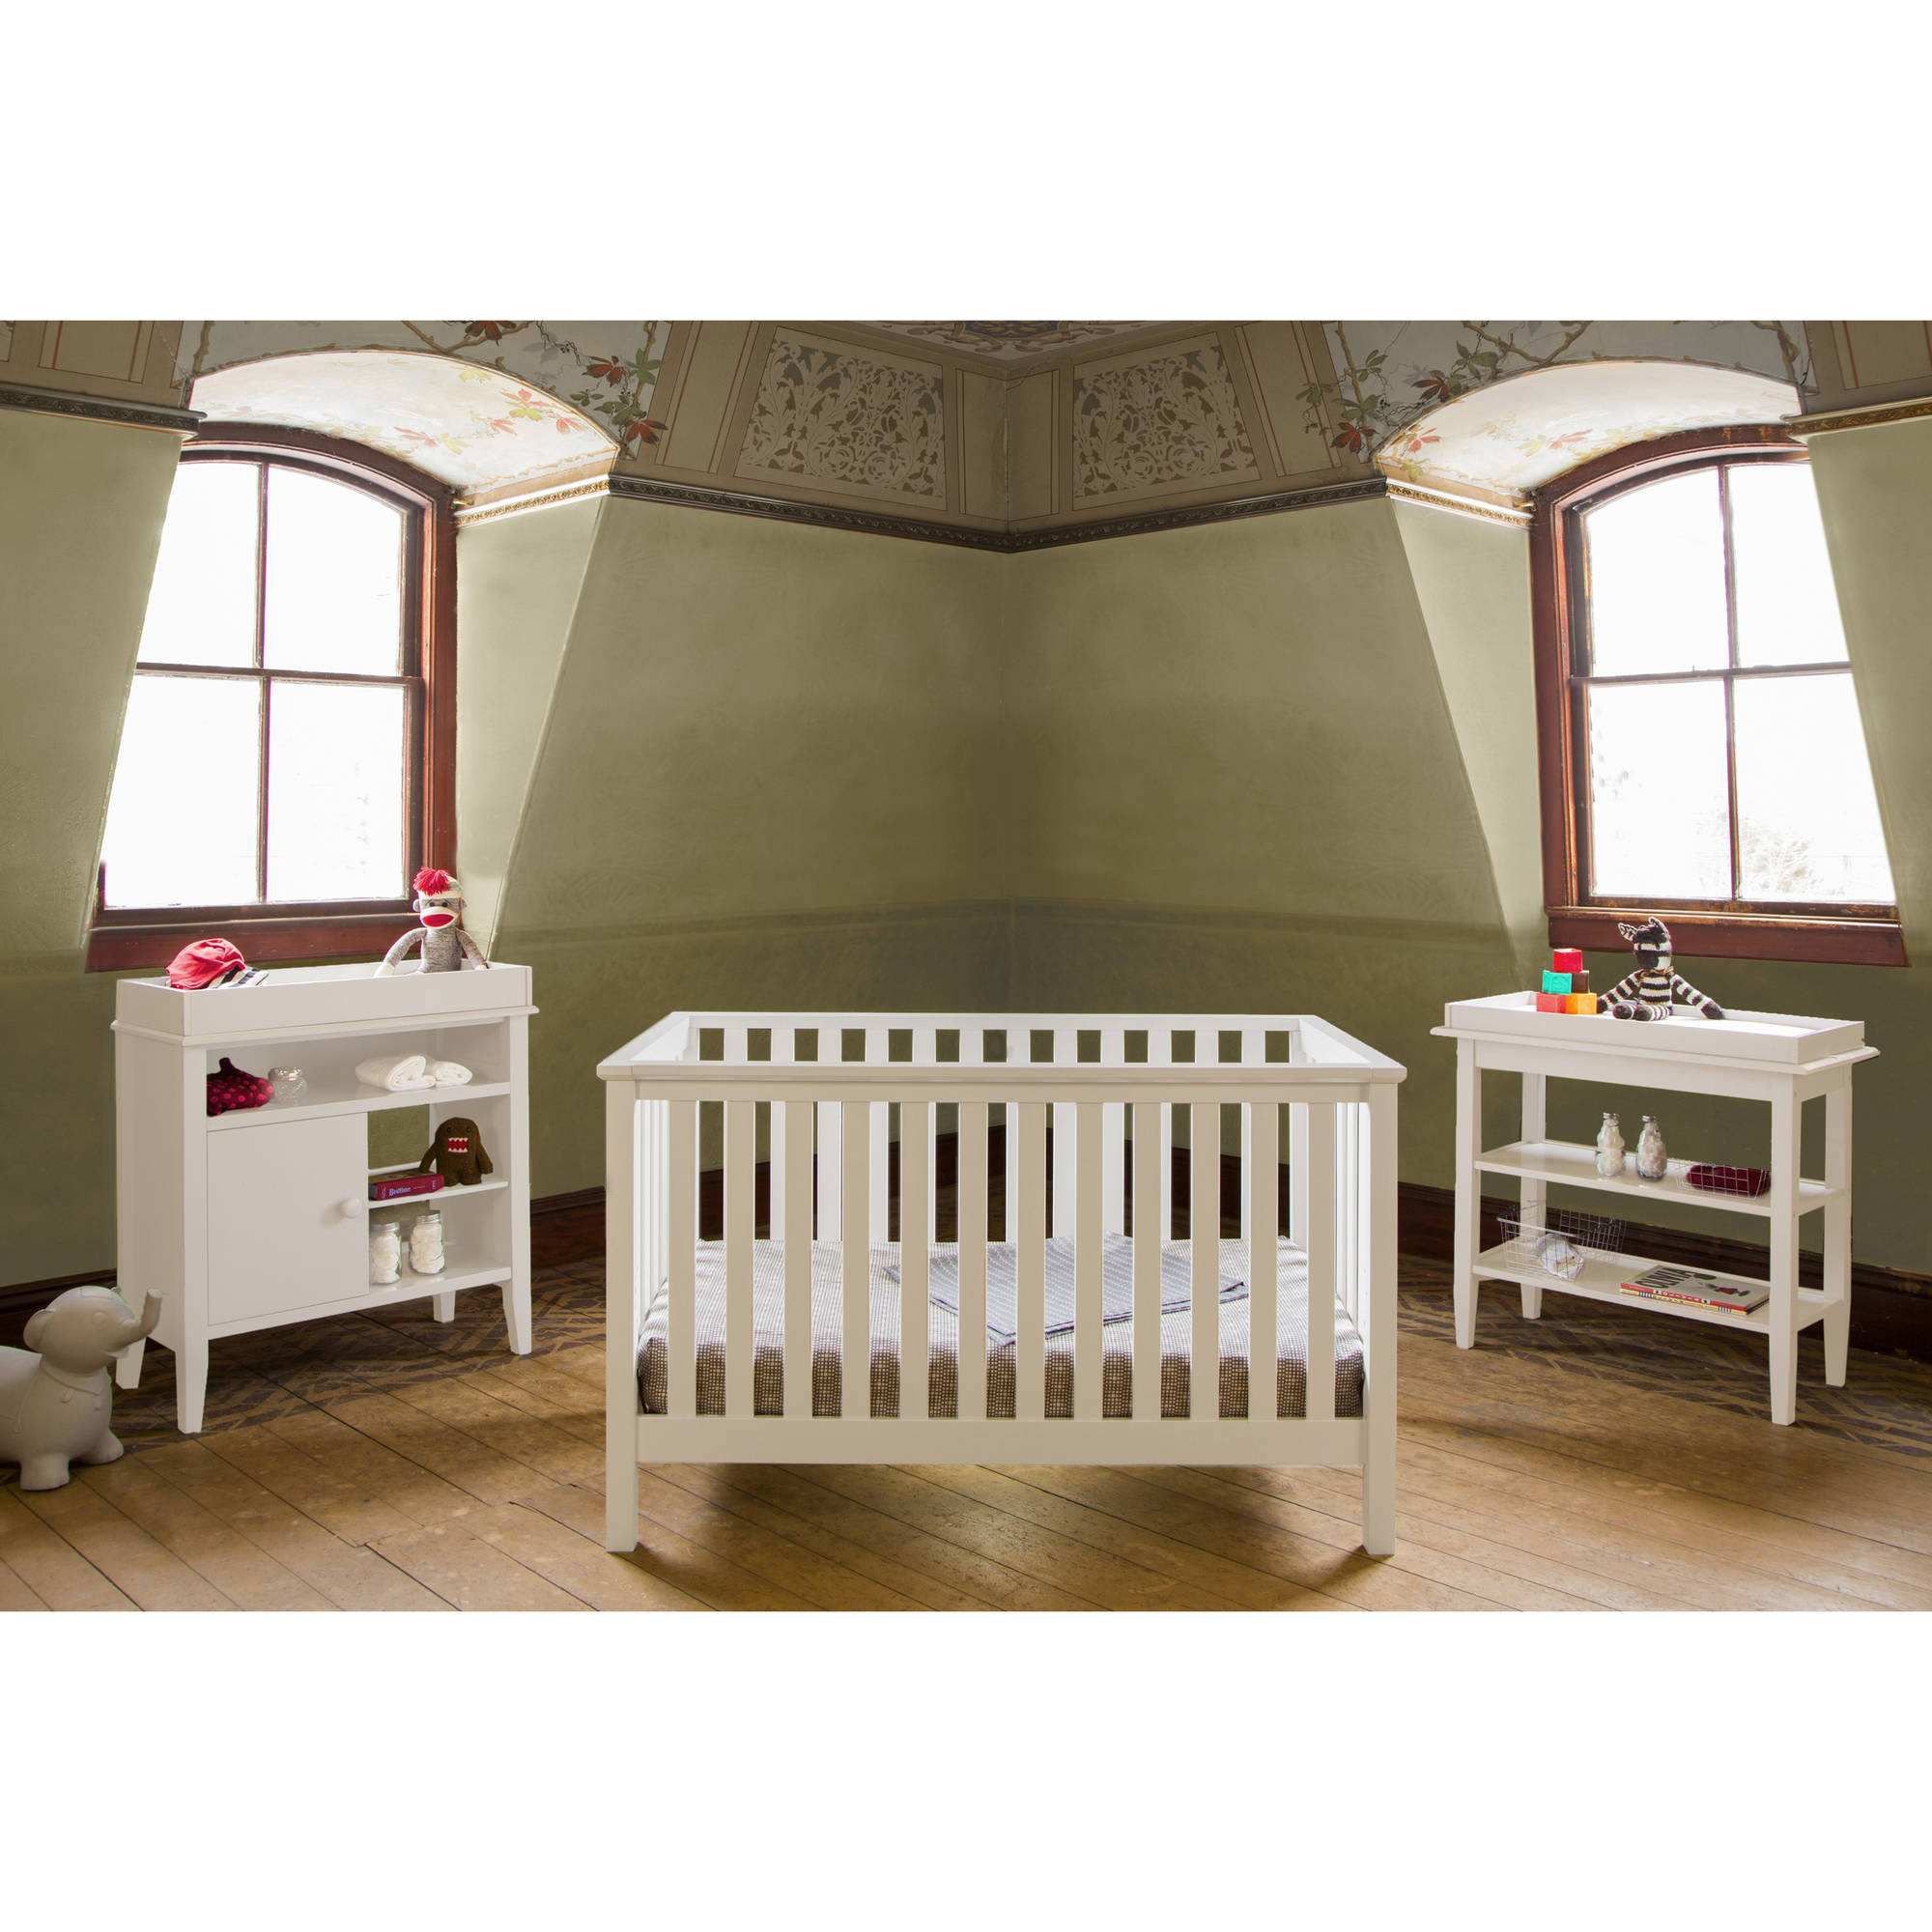 Lolly and Me Mod 4-in-1 Fixed-Side Convertible Crib, White